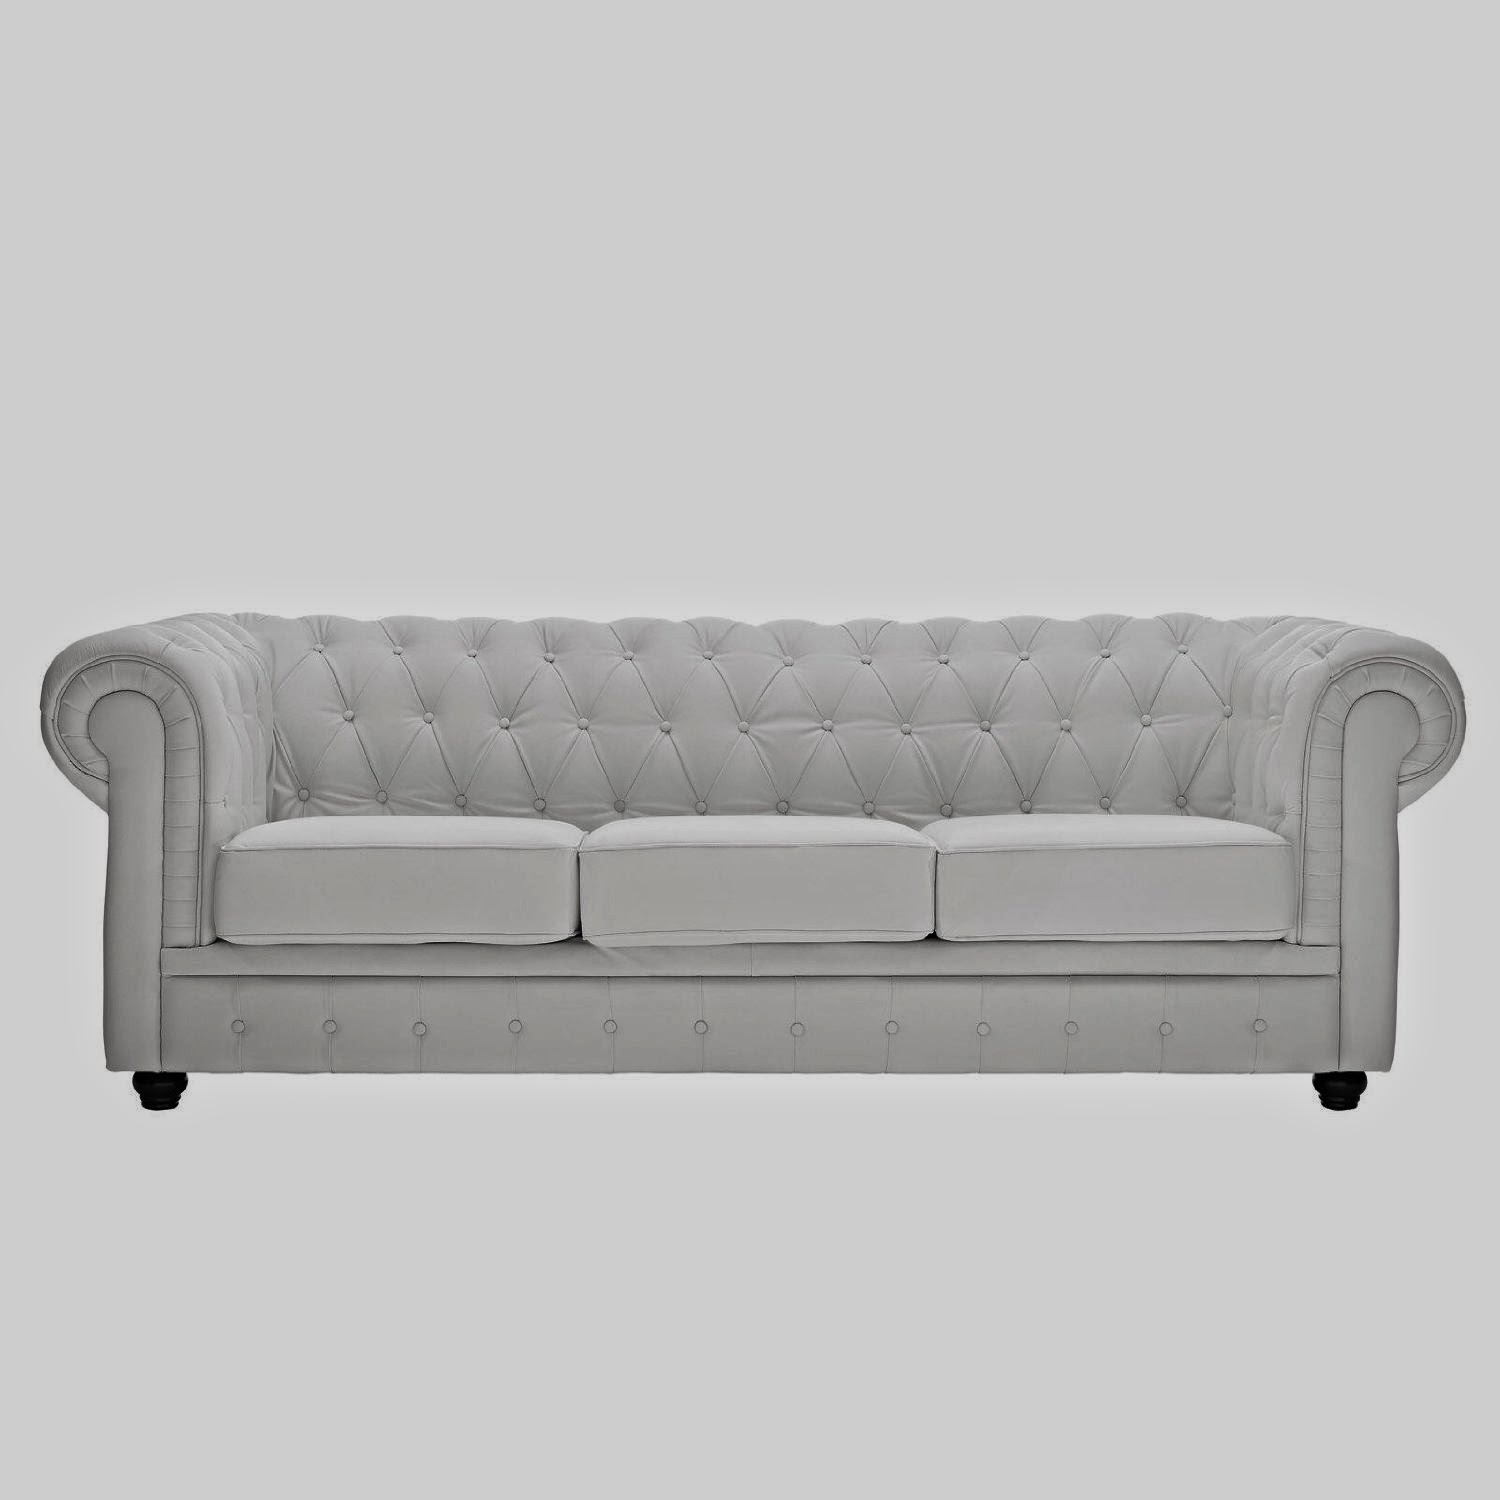 Chesterfield Sofa Leather White Duncan Phyfe Reupholstered Couch